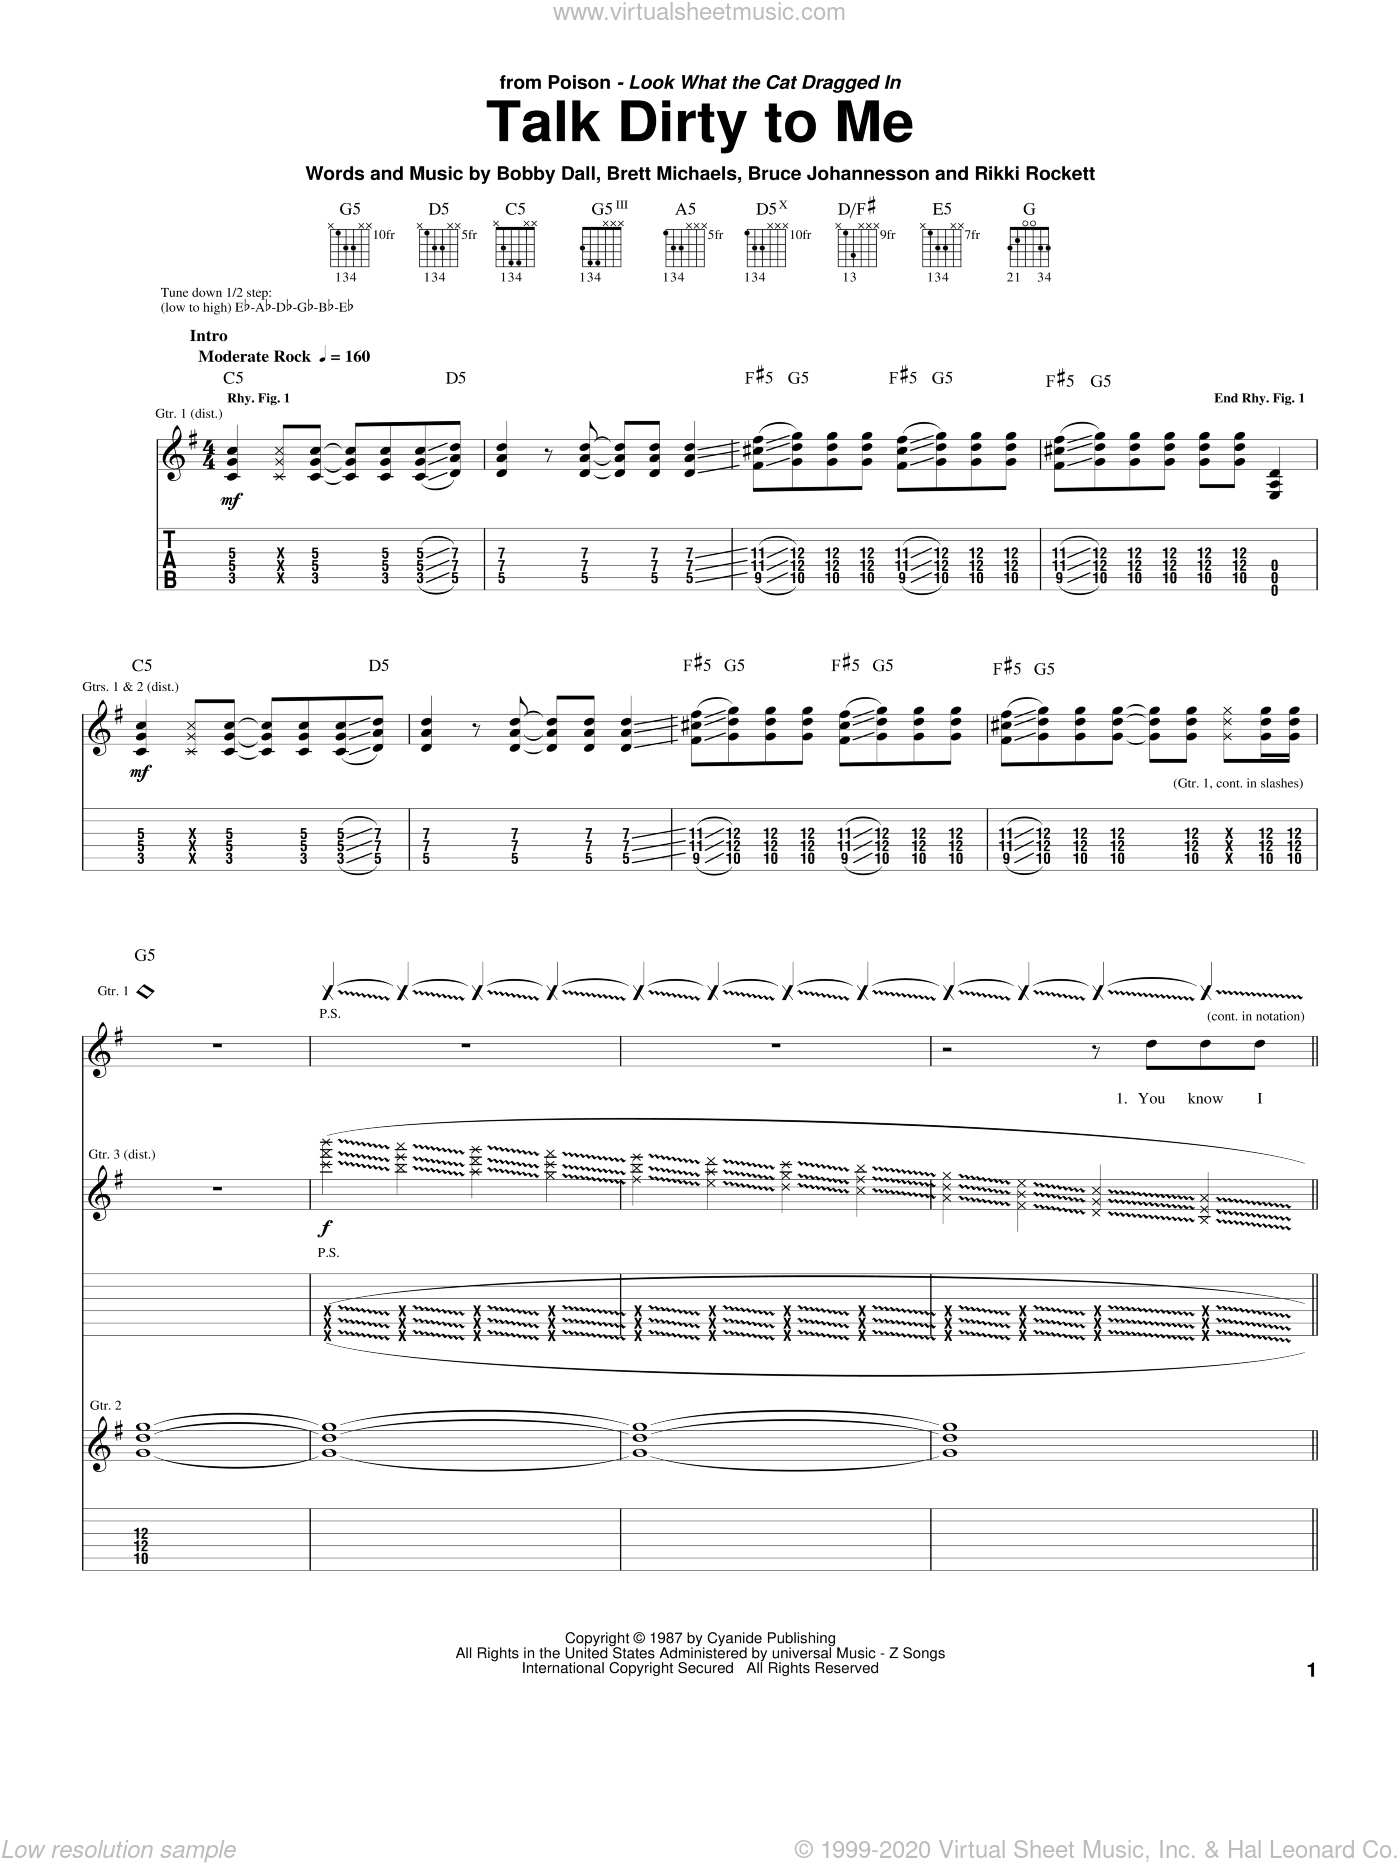 Talk Dirty To Me sheet music for guitar (tablature) by Rikki Rockett, Poison and Bobby Dall. Score Image Preview.